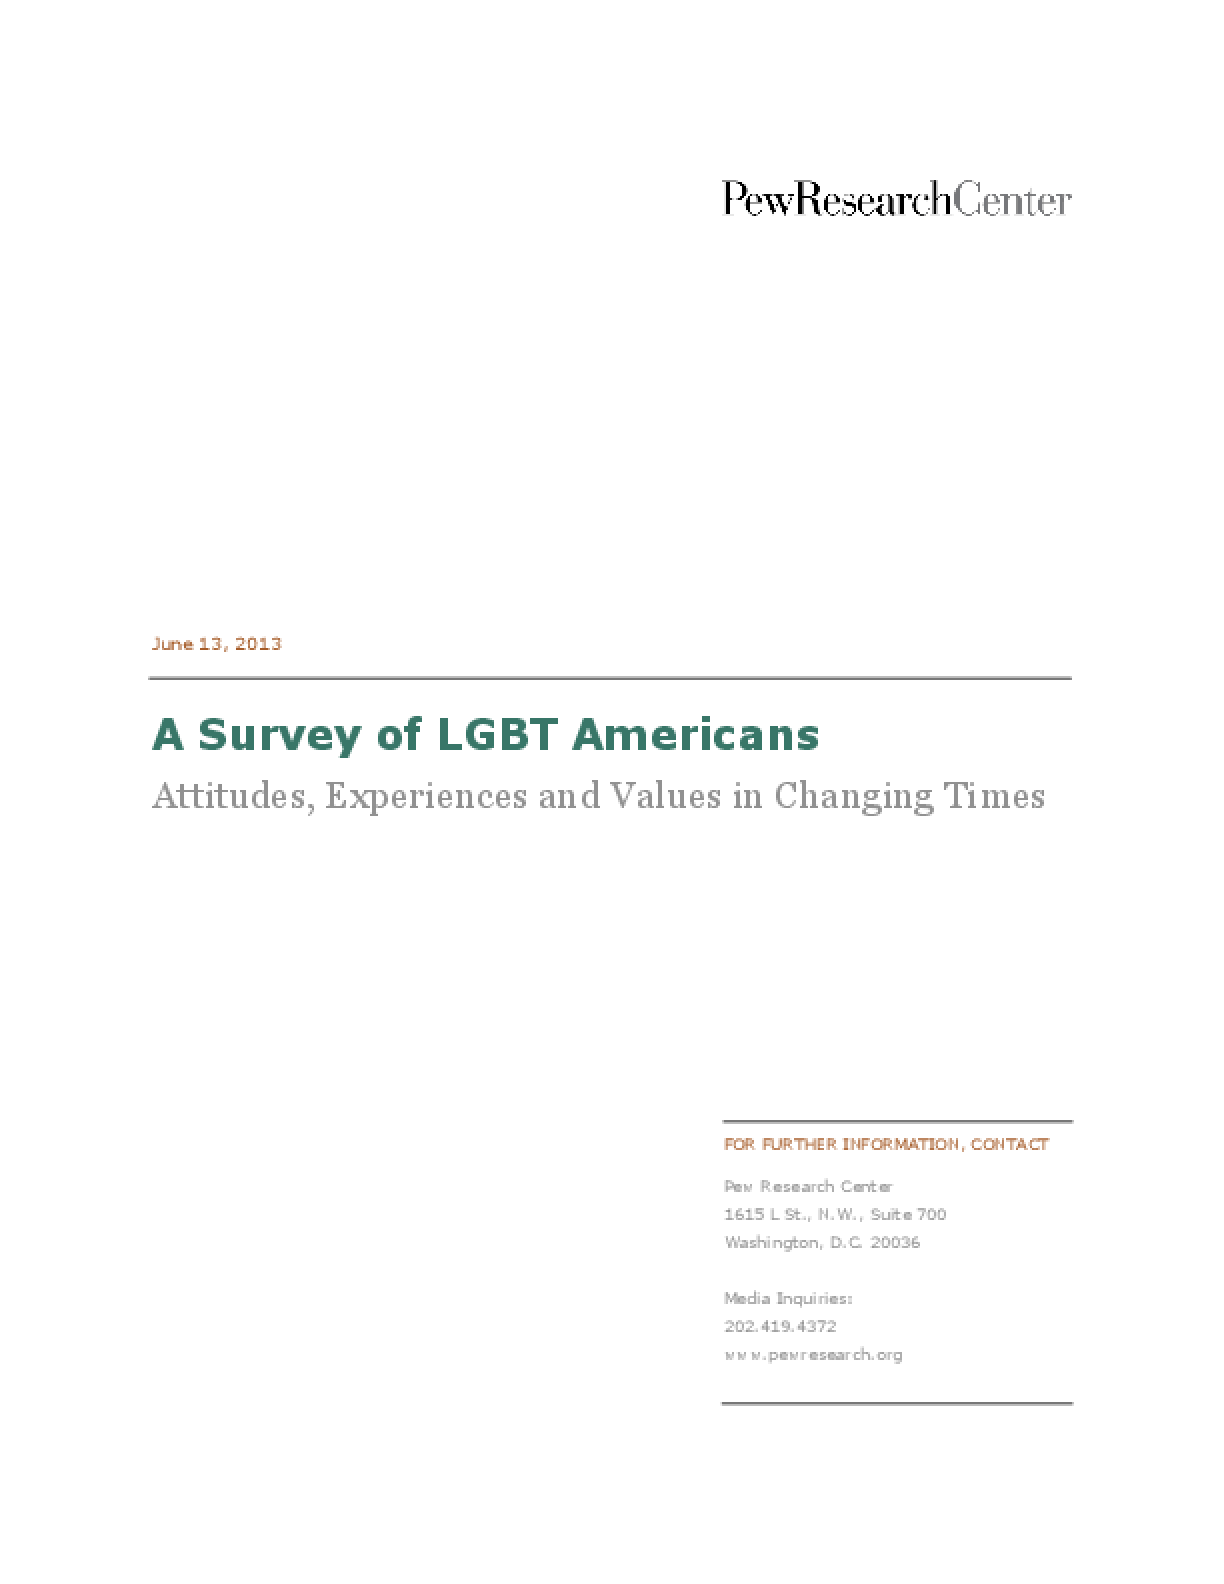 A Survey of LGBT Americans: Attitudes, Experiences and Values in Changing Times